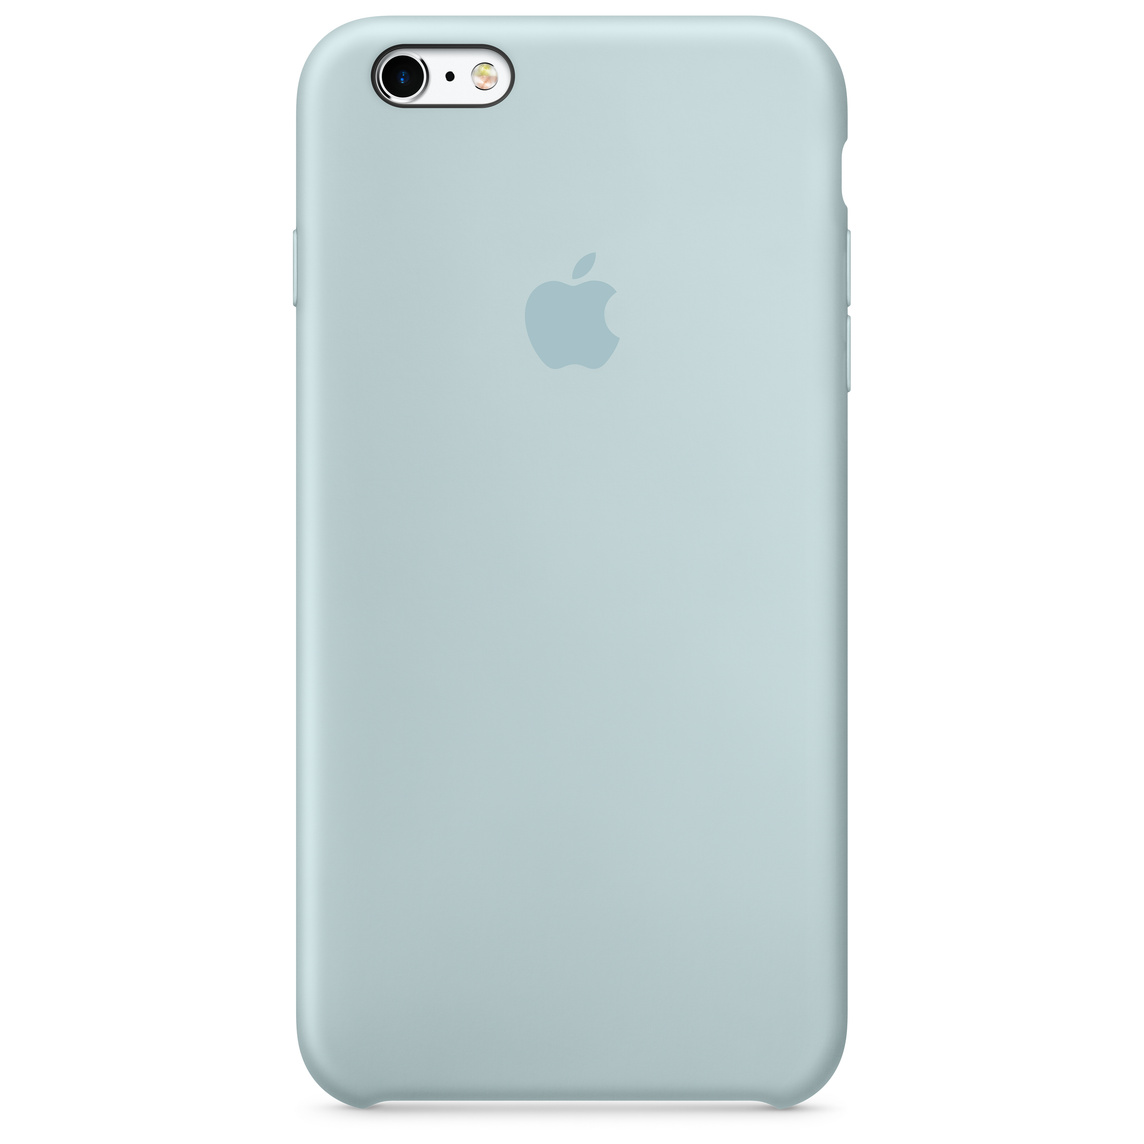 new styles 55b16 00108 iPhone 6 / 6s Silicone Case - Turquoise